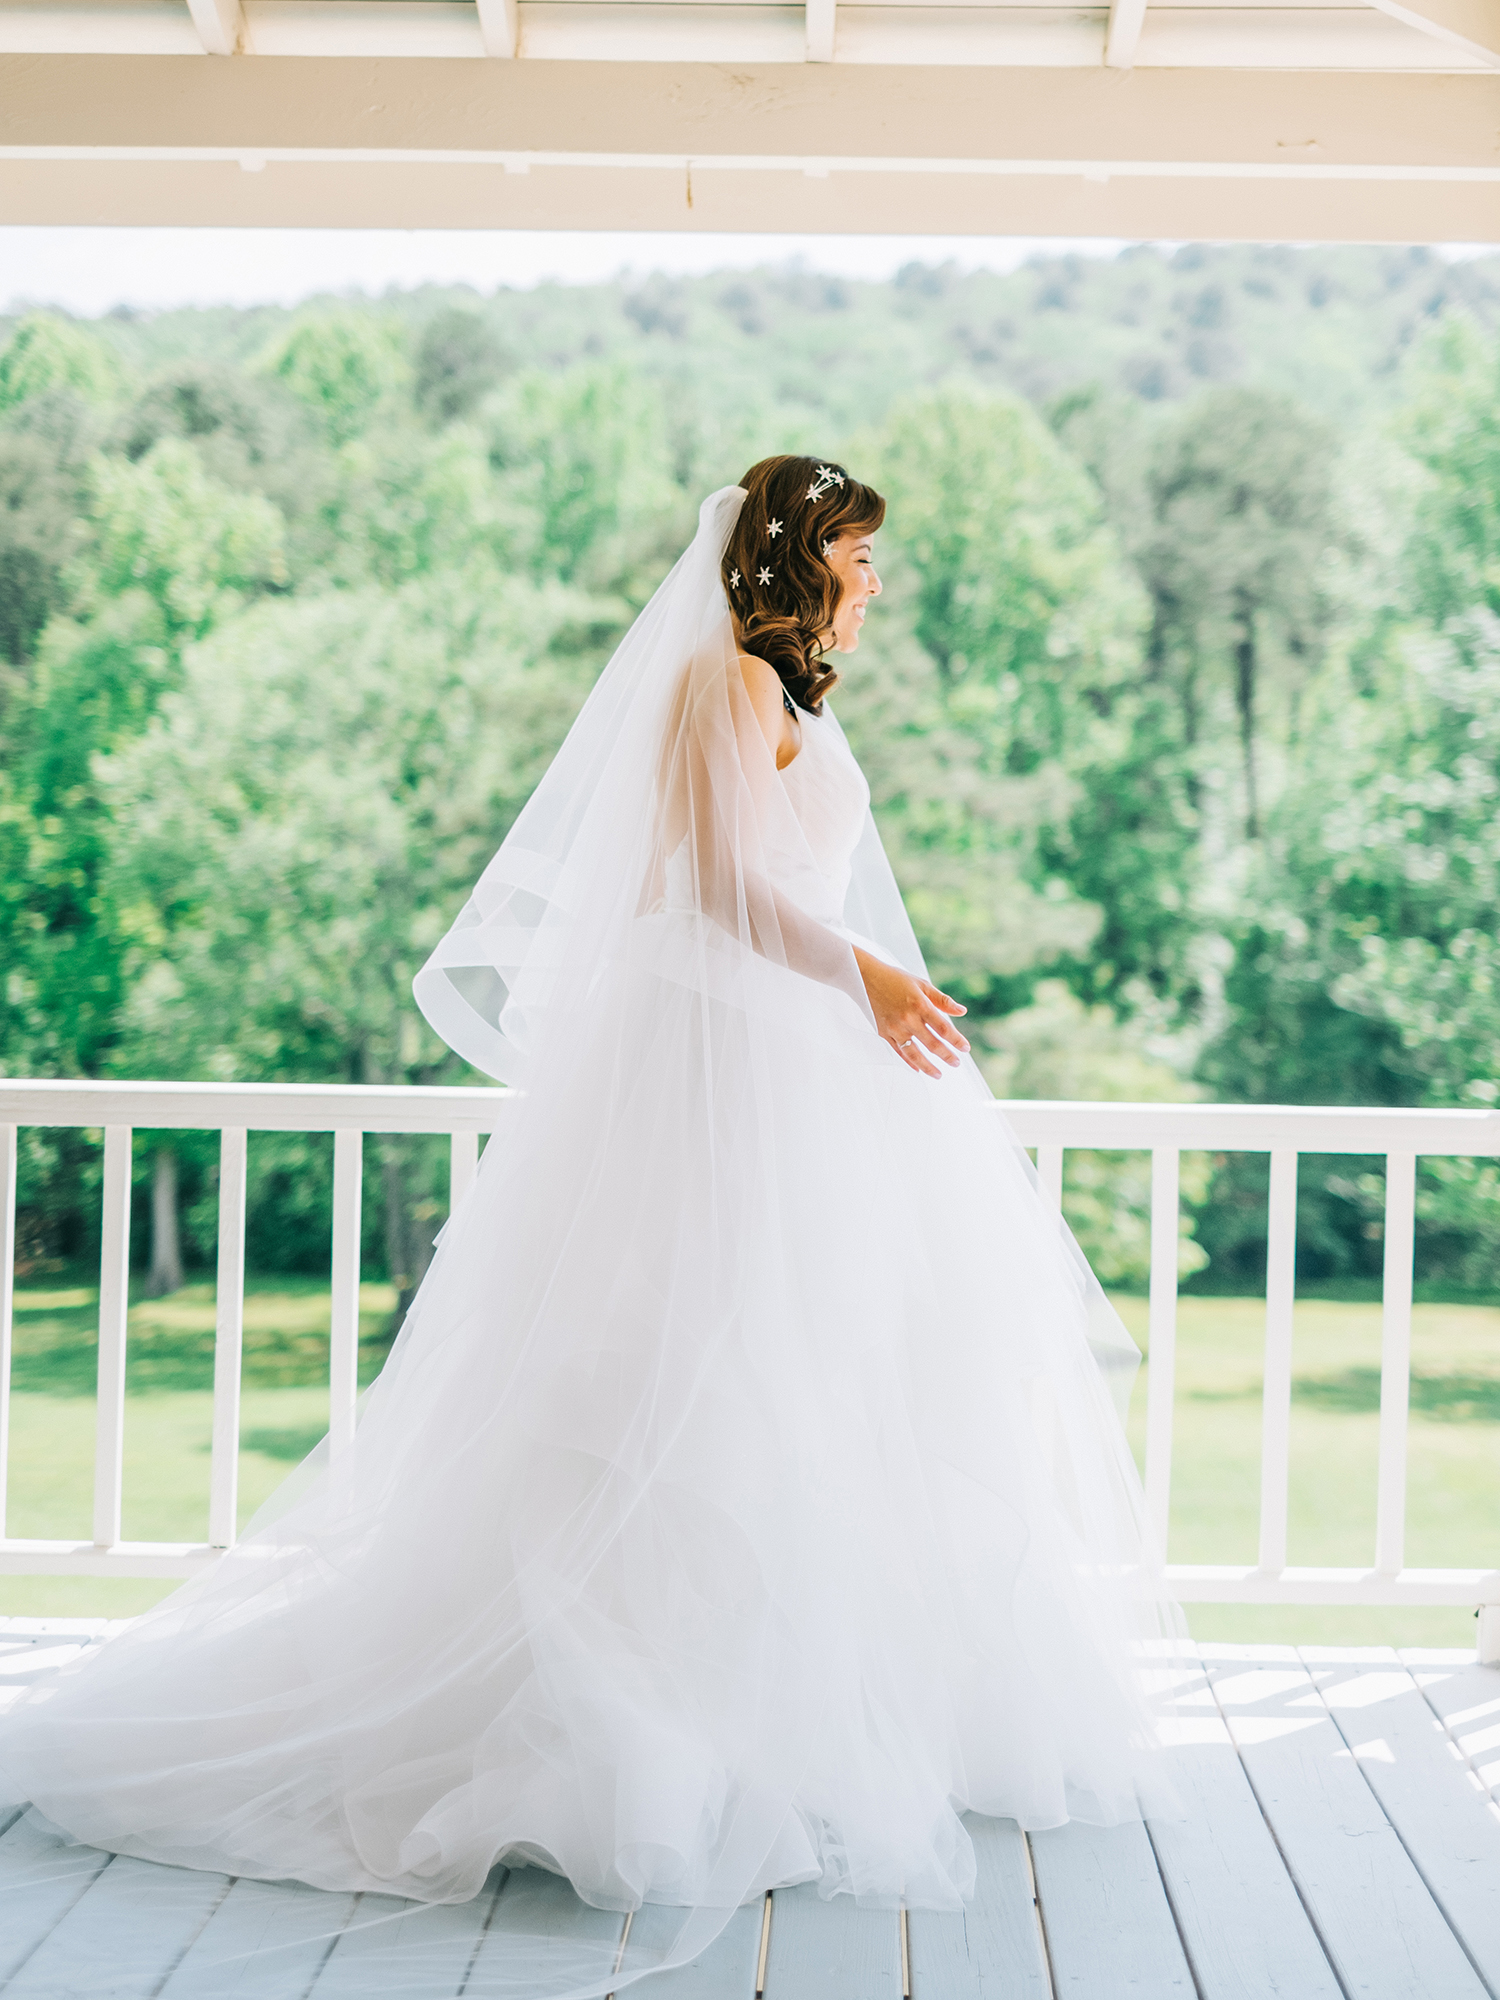 A Guest's Guide to Communicating with the Bride on Her Wedding Day